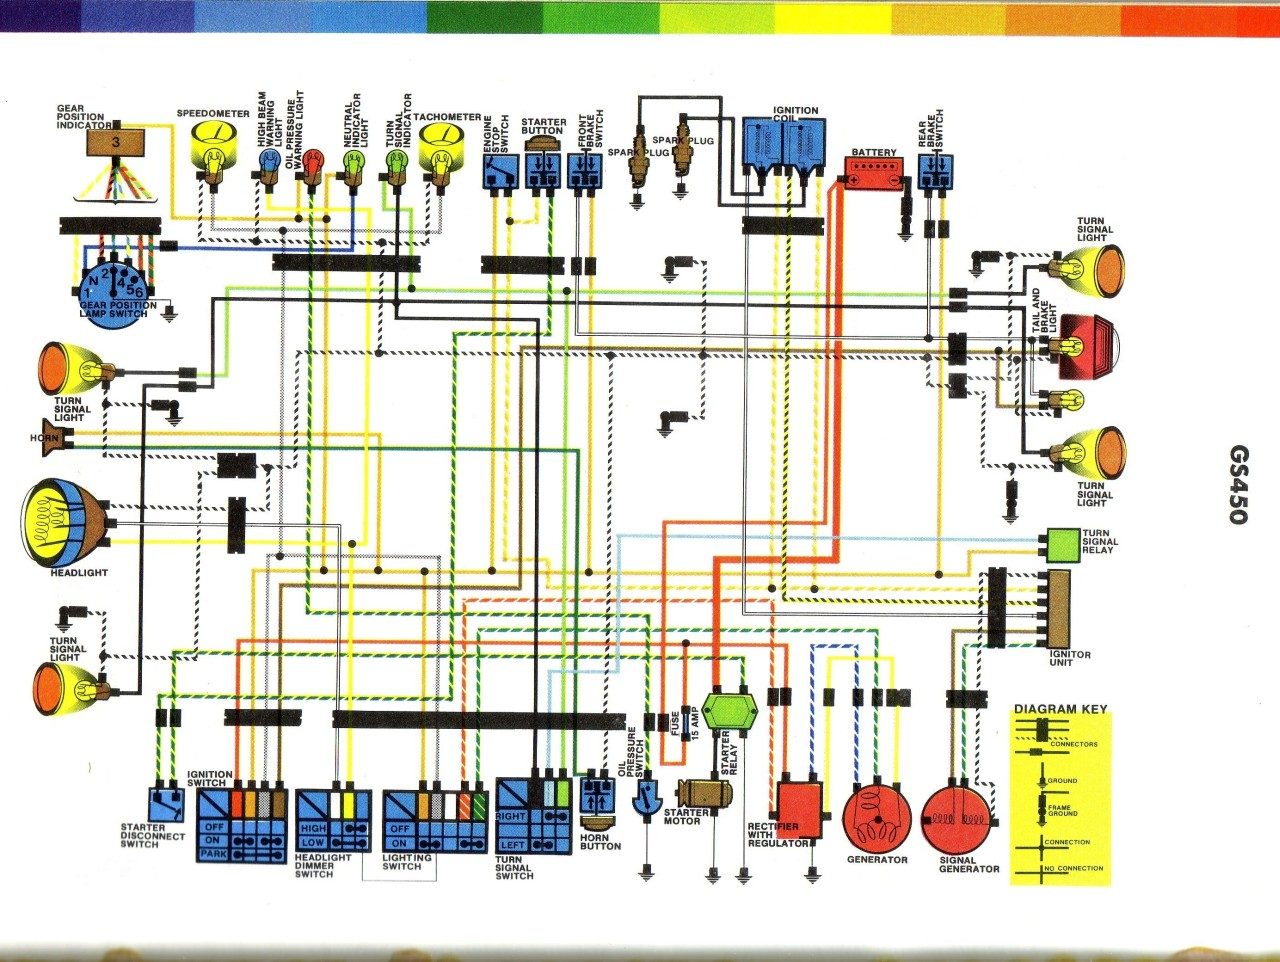 medium resolution of gs750 wiring diagram wiring diagram syssuzuki gs 750 wiring diagram wiring diagram technic gs750 wiring diagram